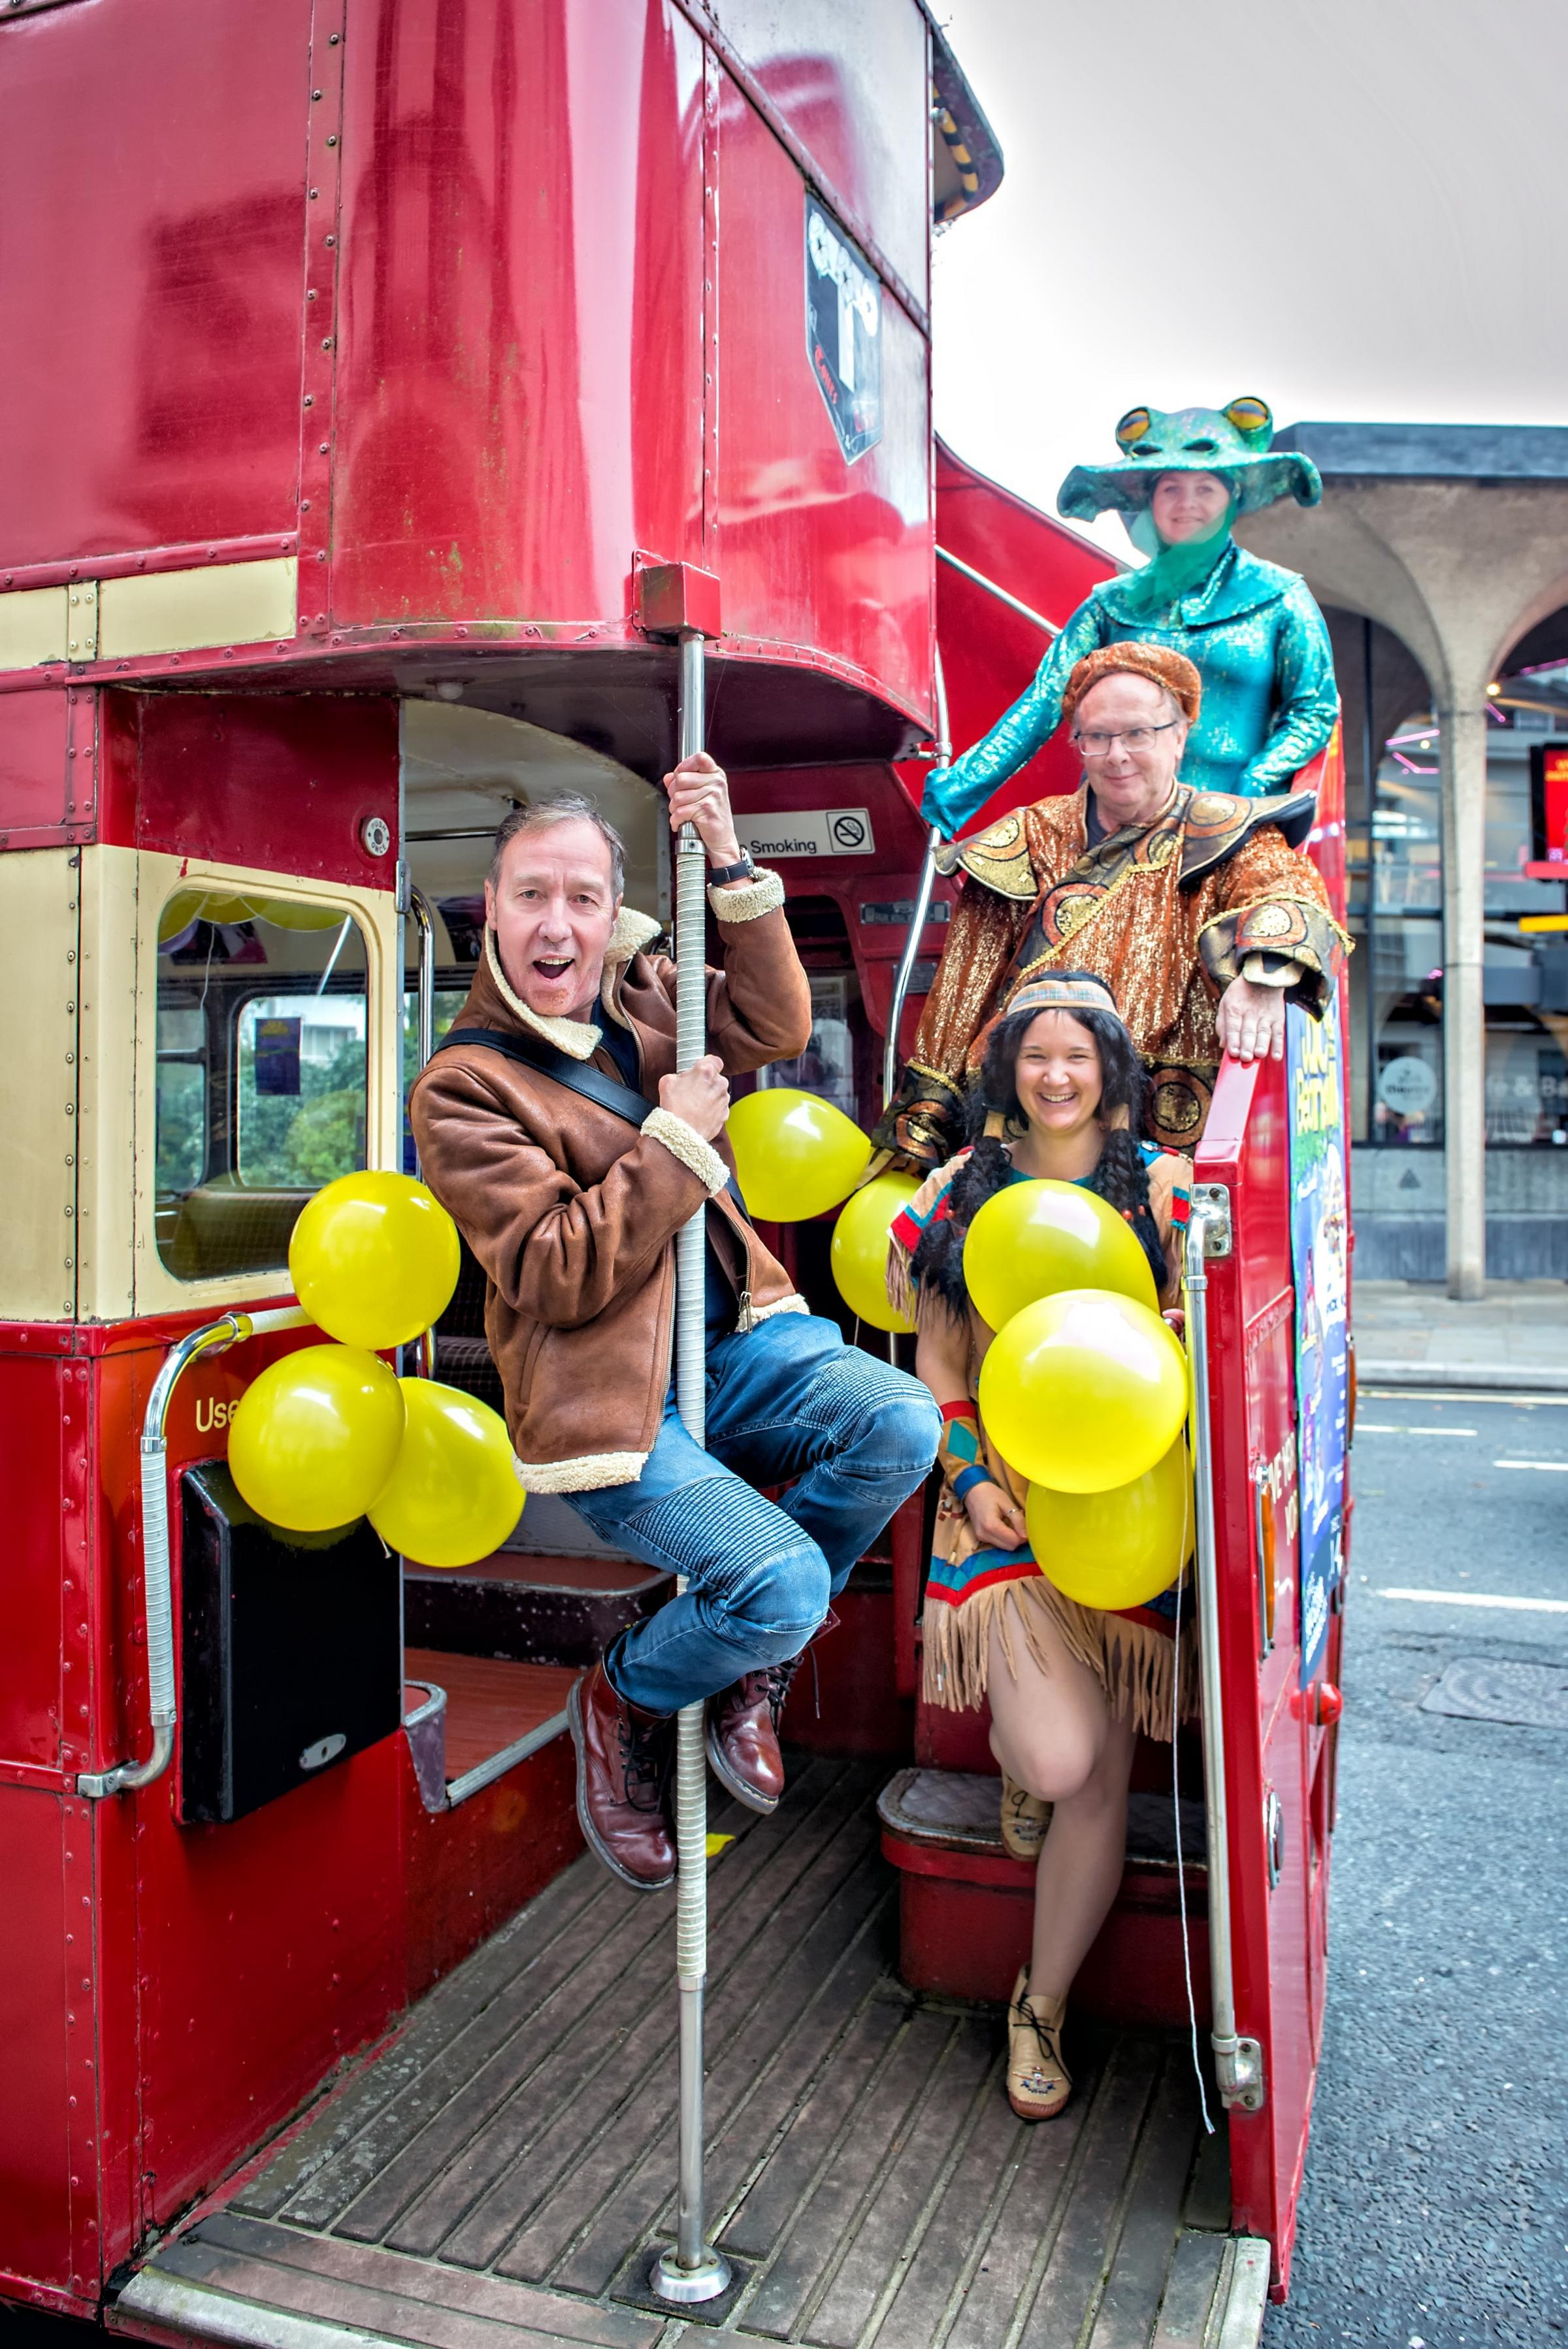 Martin Barrass and fellow panto cast members at the launch of York Theatre Royal's pantomime Jack & the Beanstalk launch. Picture by Anthony Robling